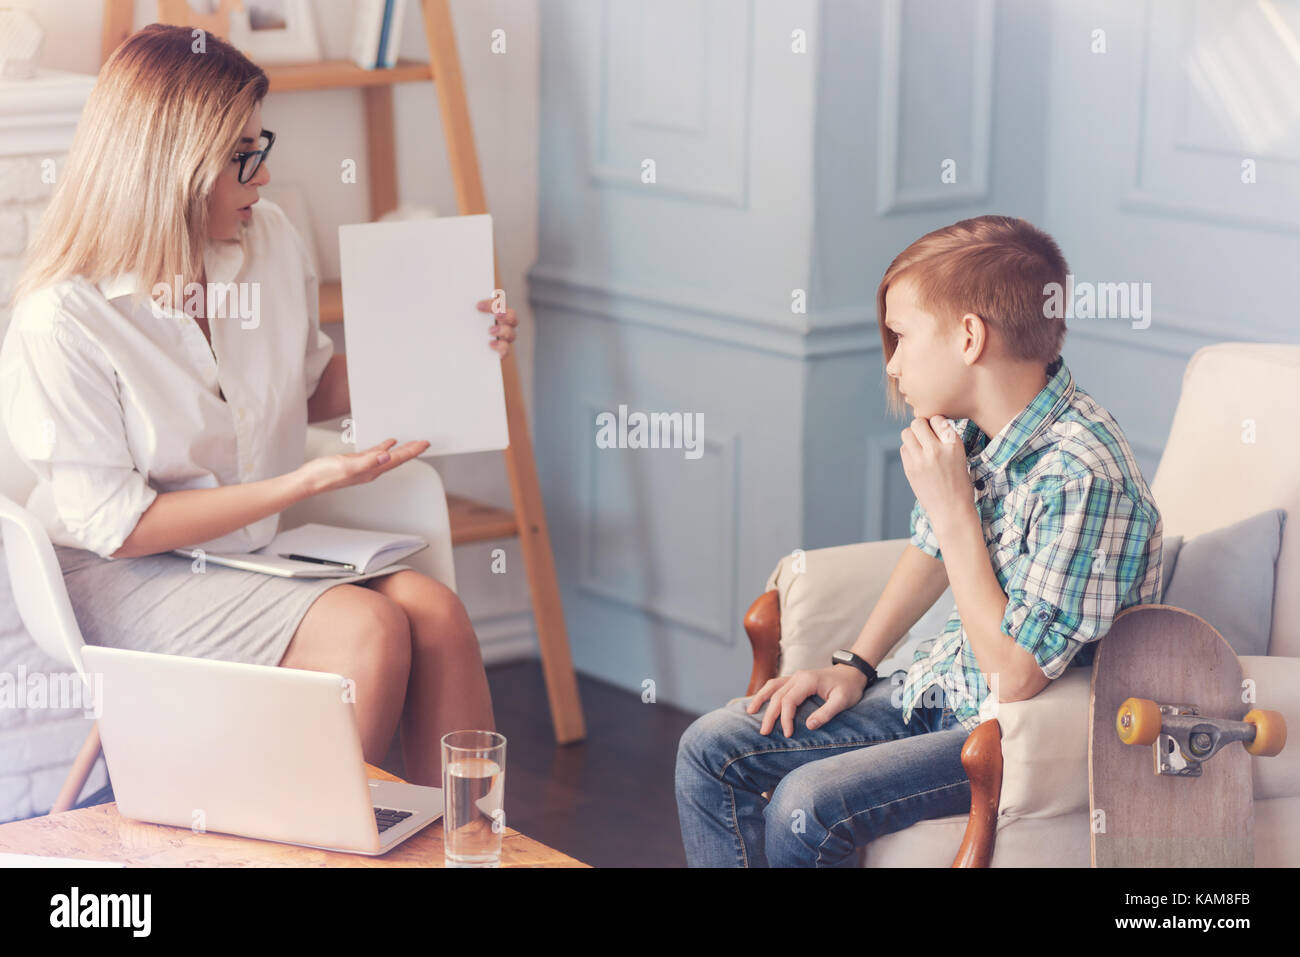 Professional psychologist having a test with a schoolboy - Stock Image